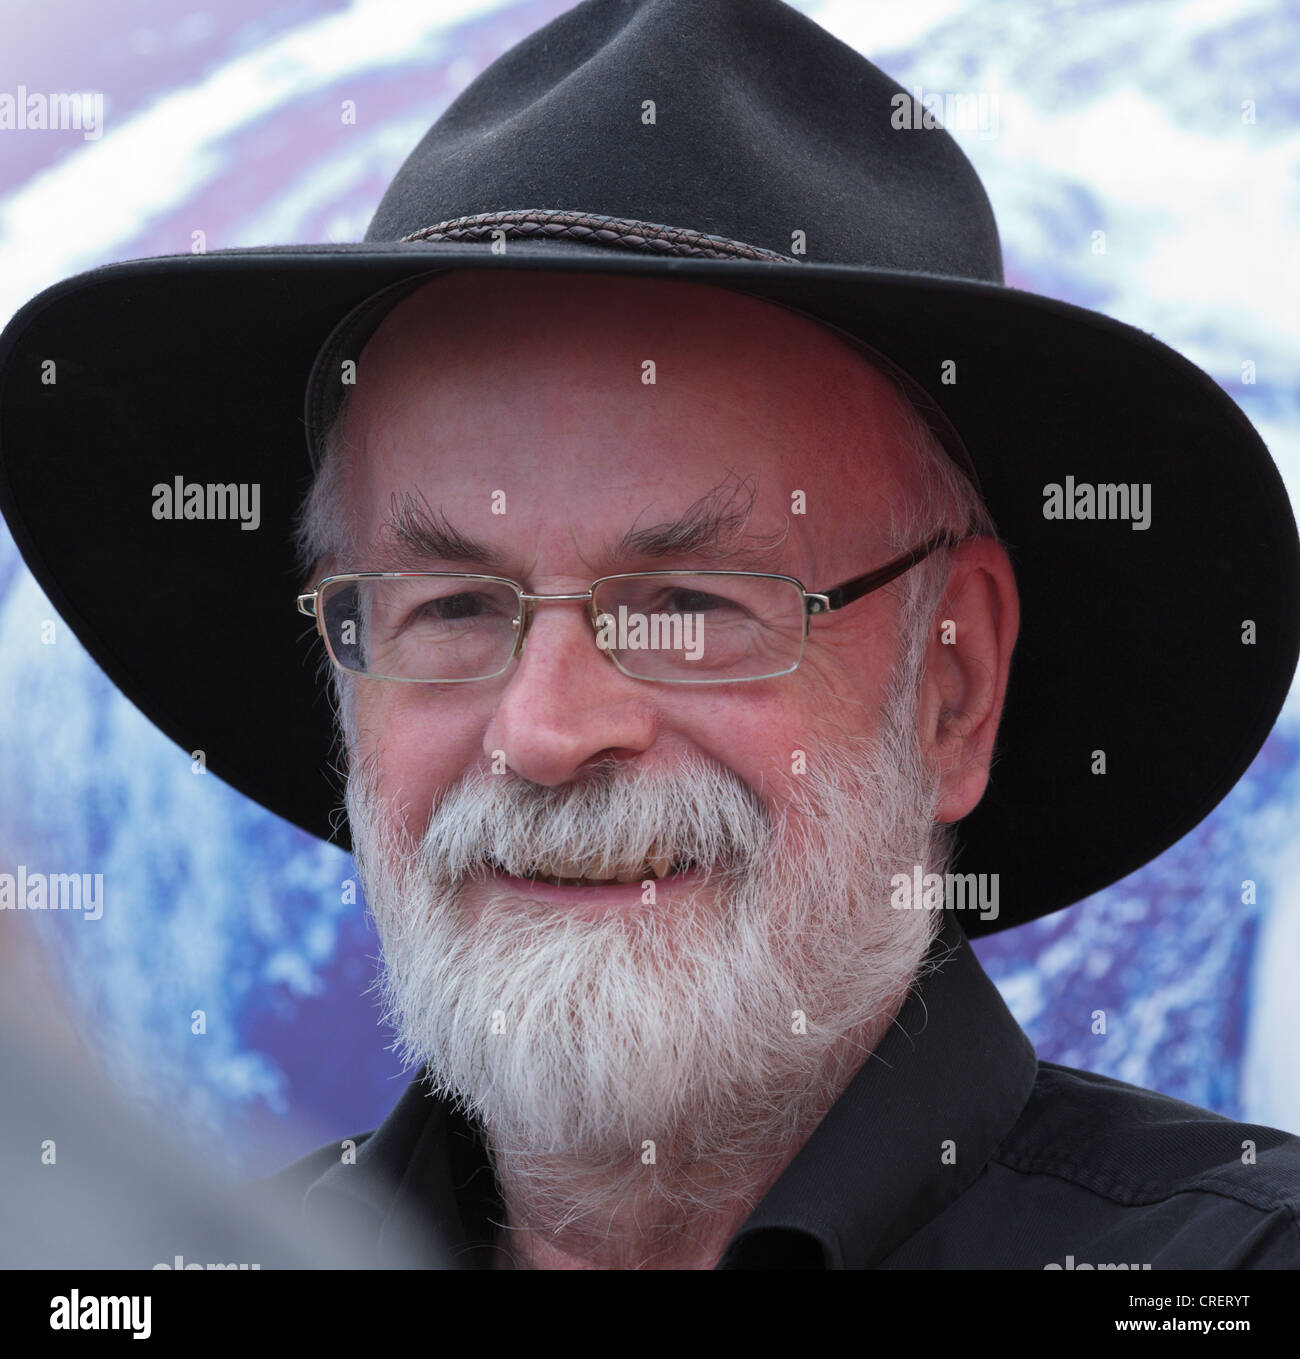 Sir Terence, John, David, (Terry) Pratchett OBE June 2012 with a giant inflatable globe behind - Stock Image